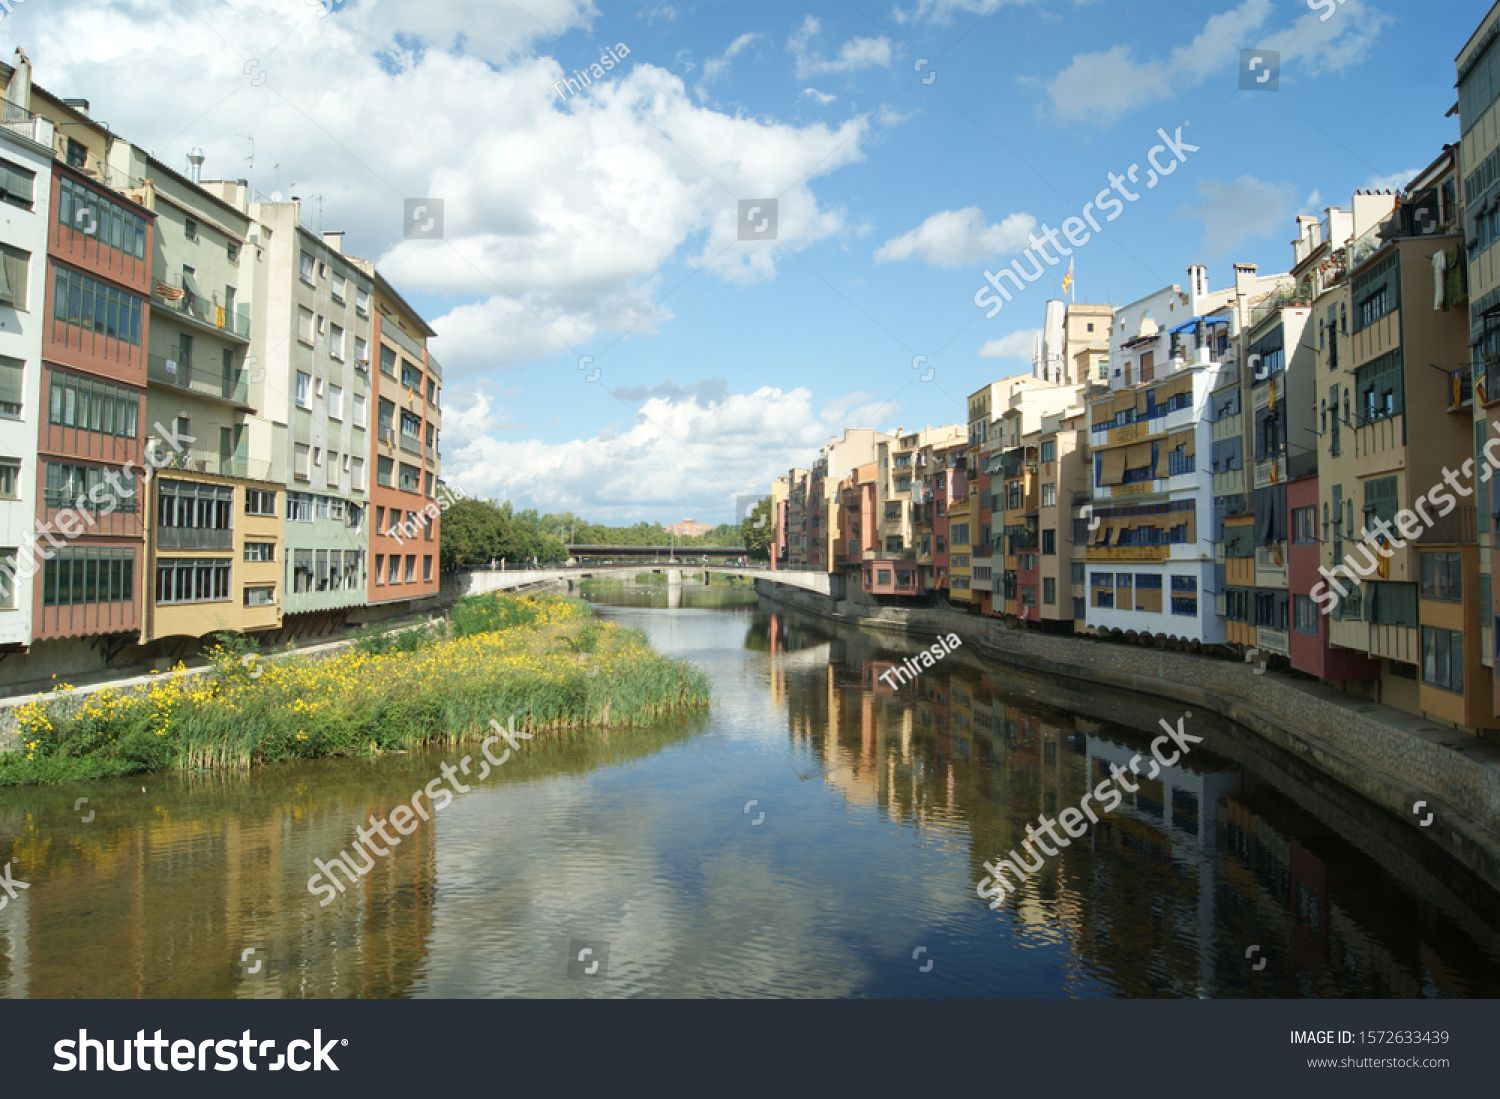 Girona Rio Onyar Medieval Town Summers Day The Old Town Houses